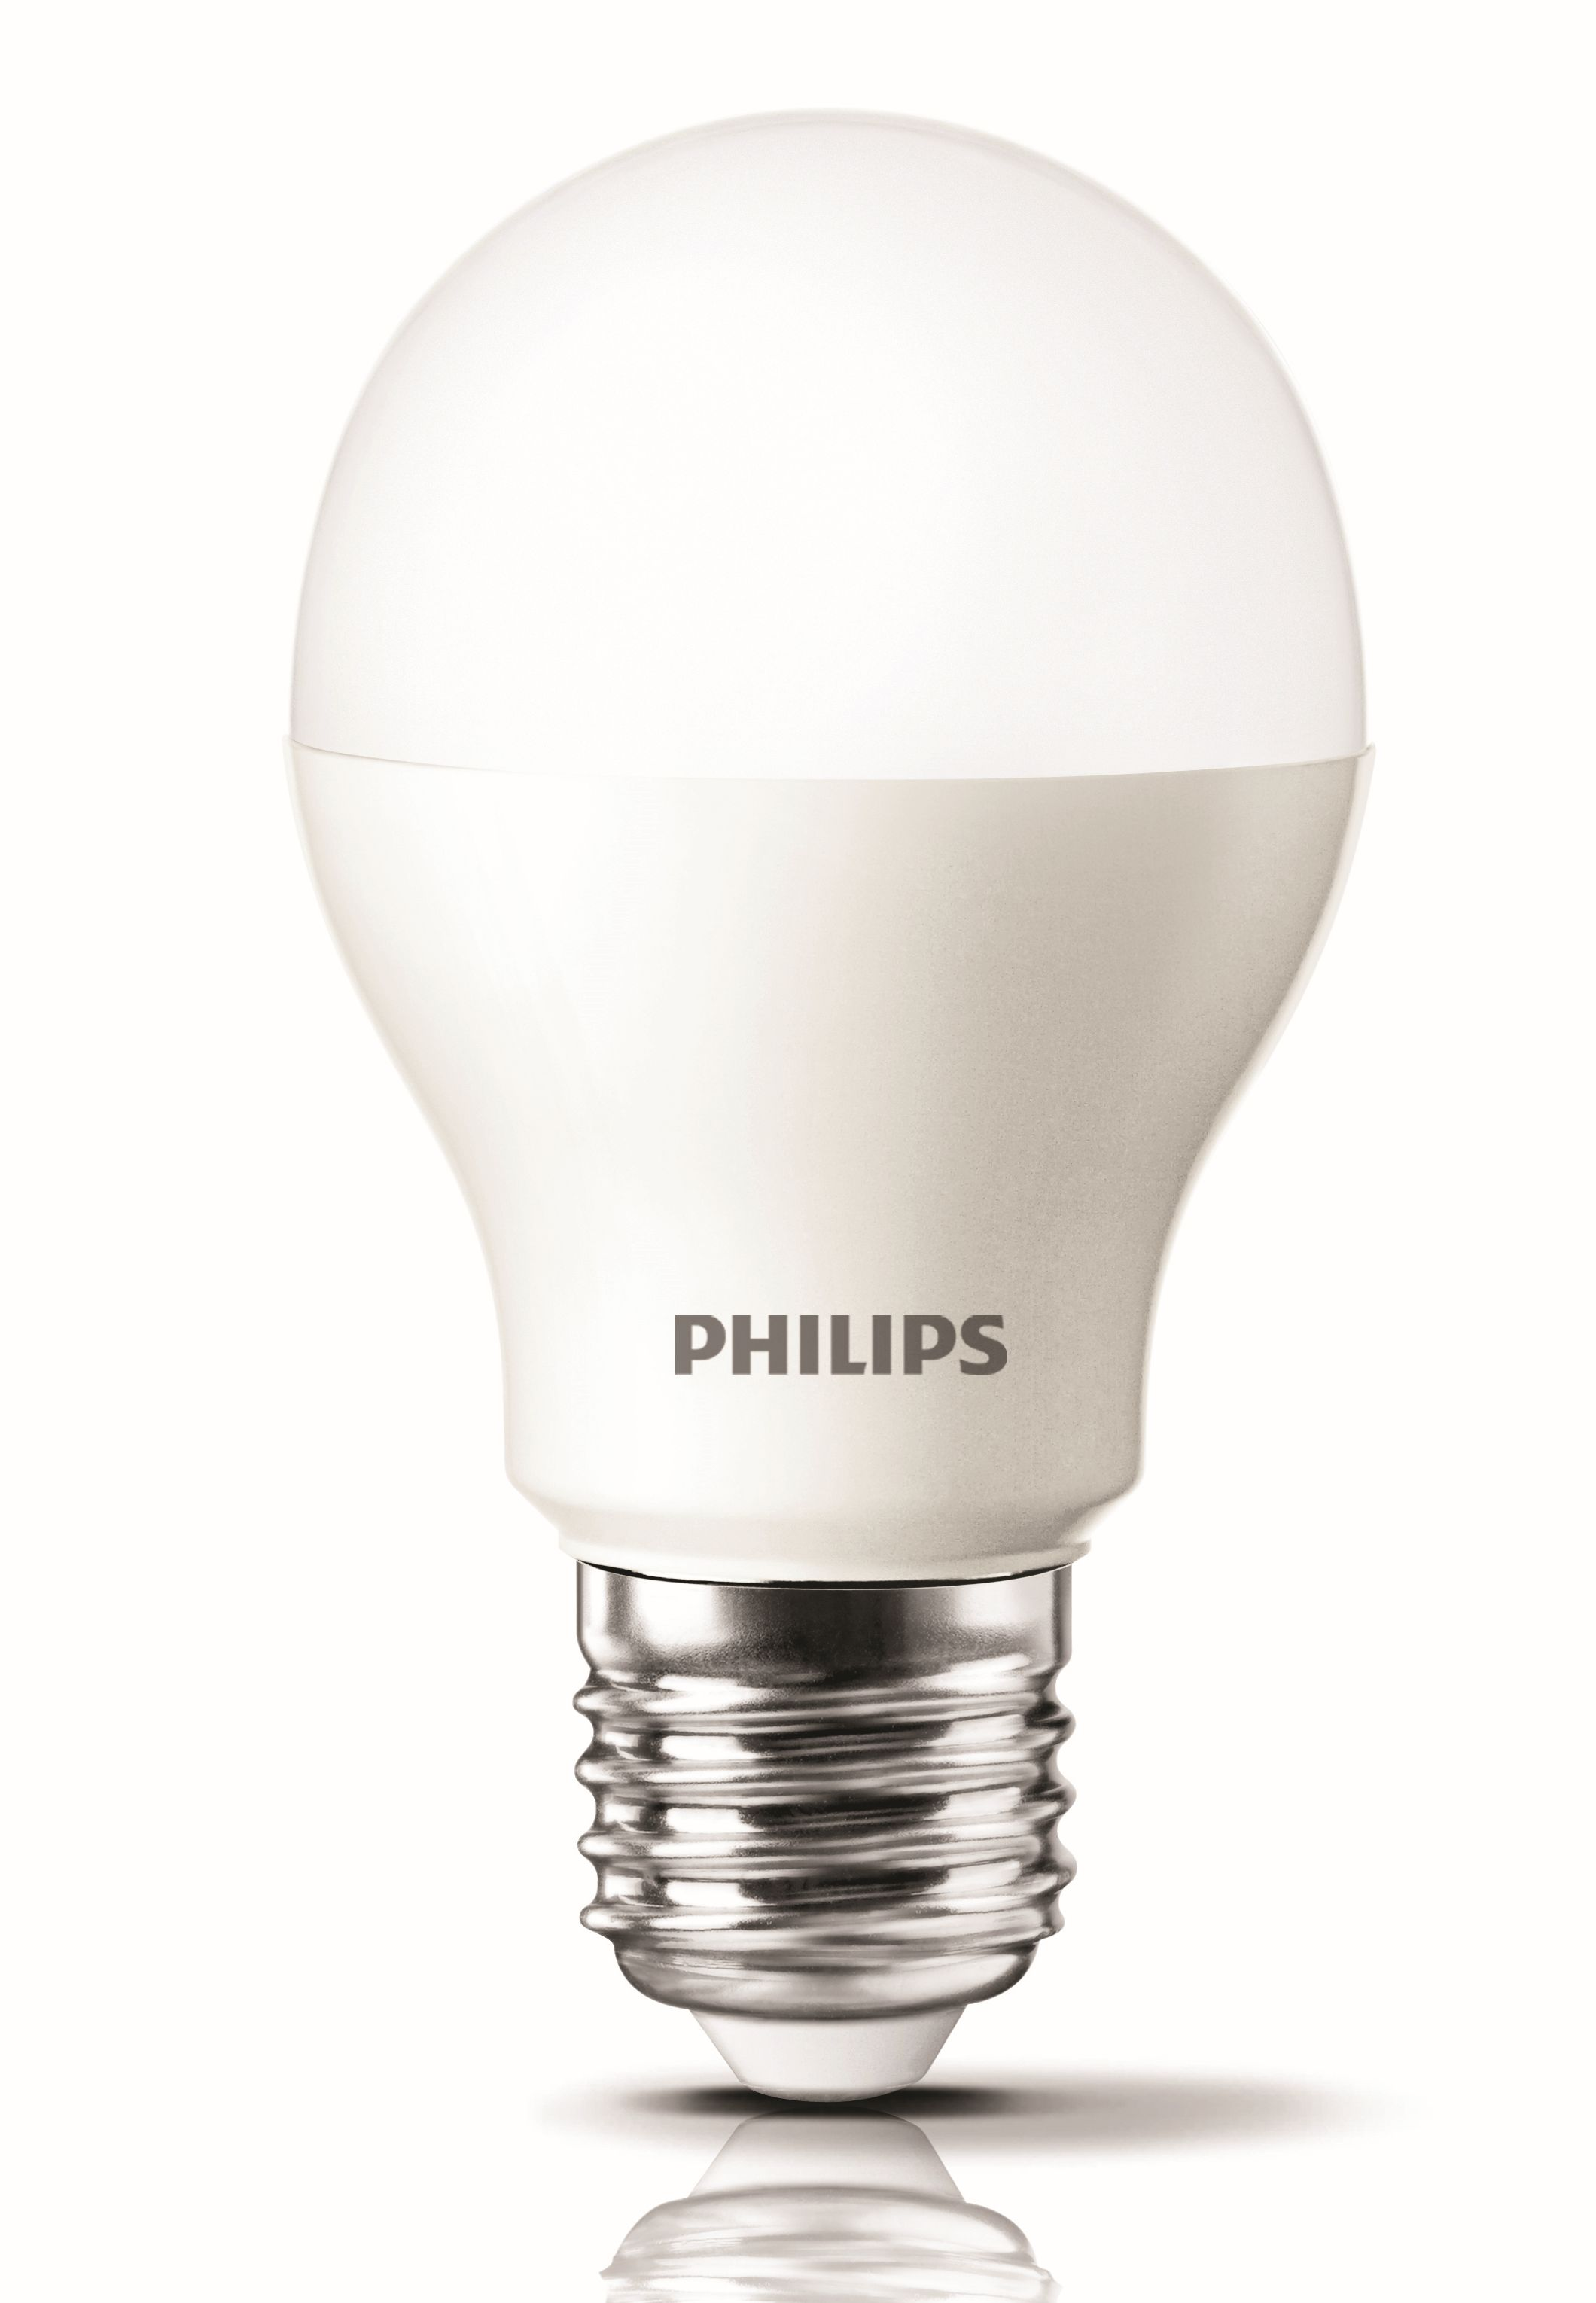 Lampara LED Philips - Formato tradicional